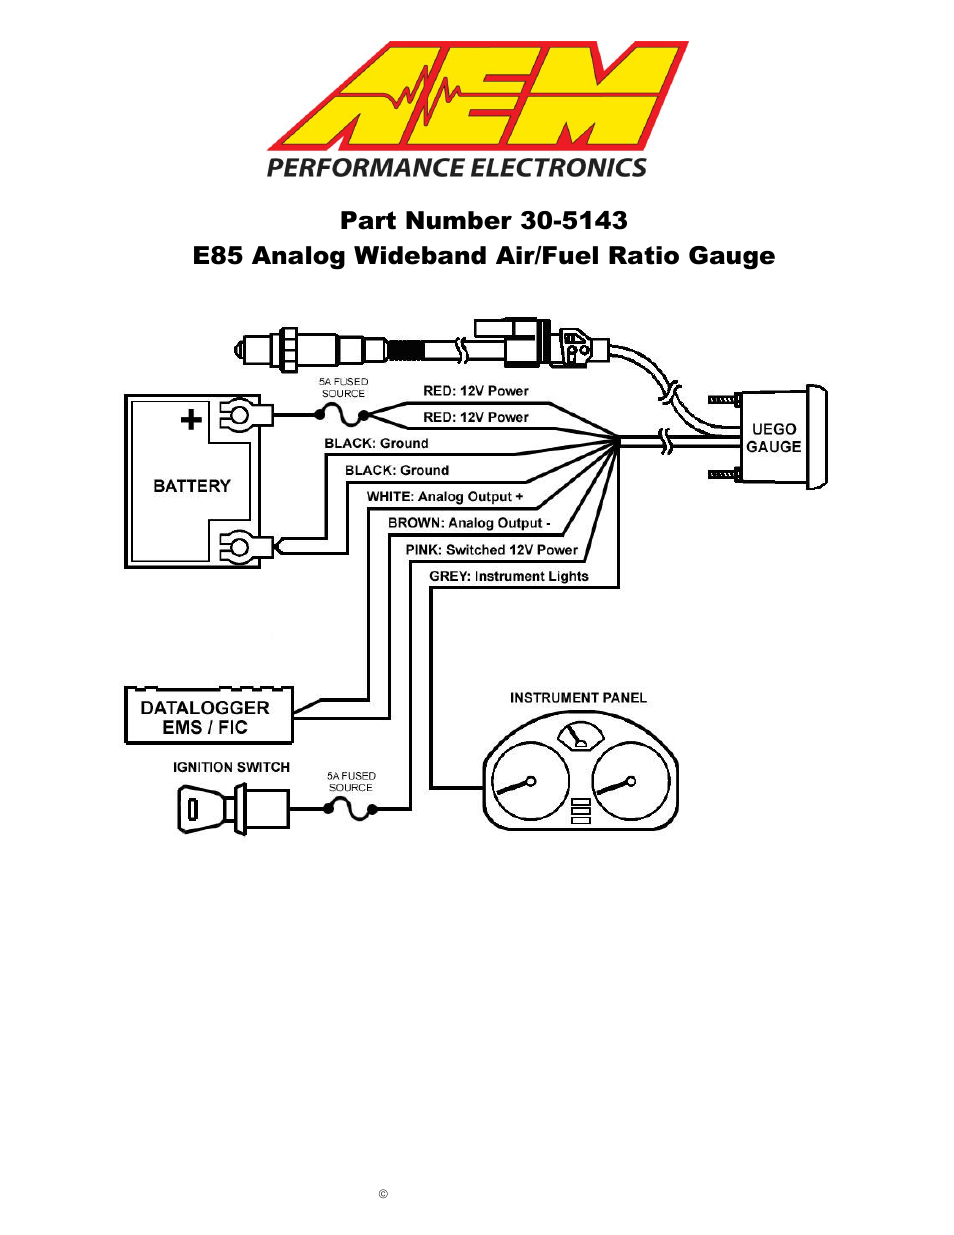 [WRG-2562] Aem Wideband Wiring Diagram